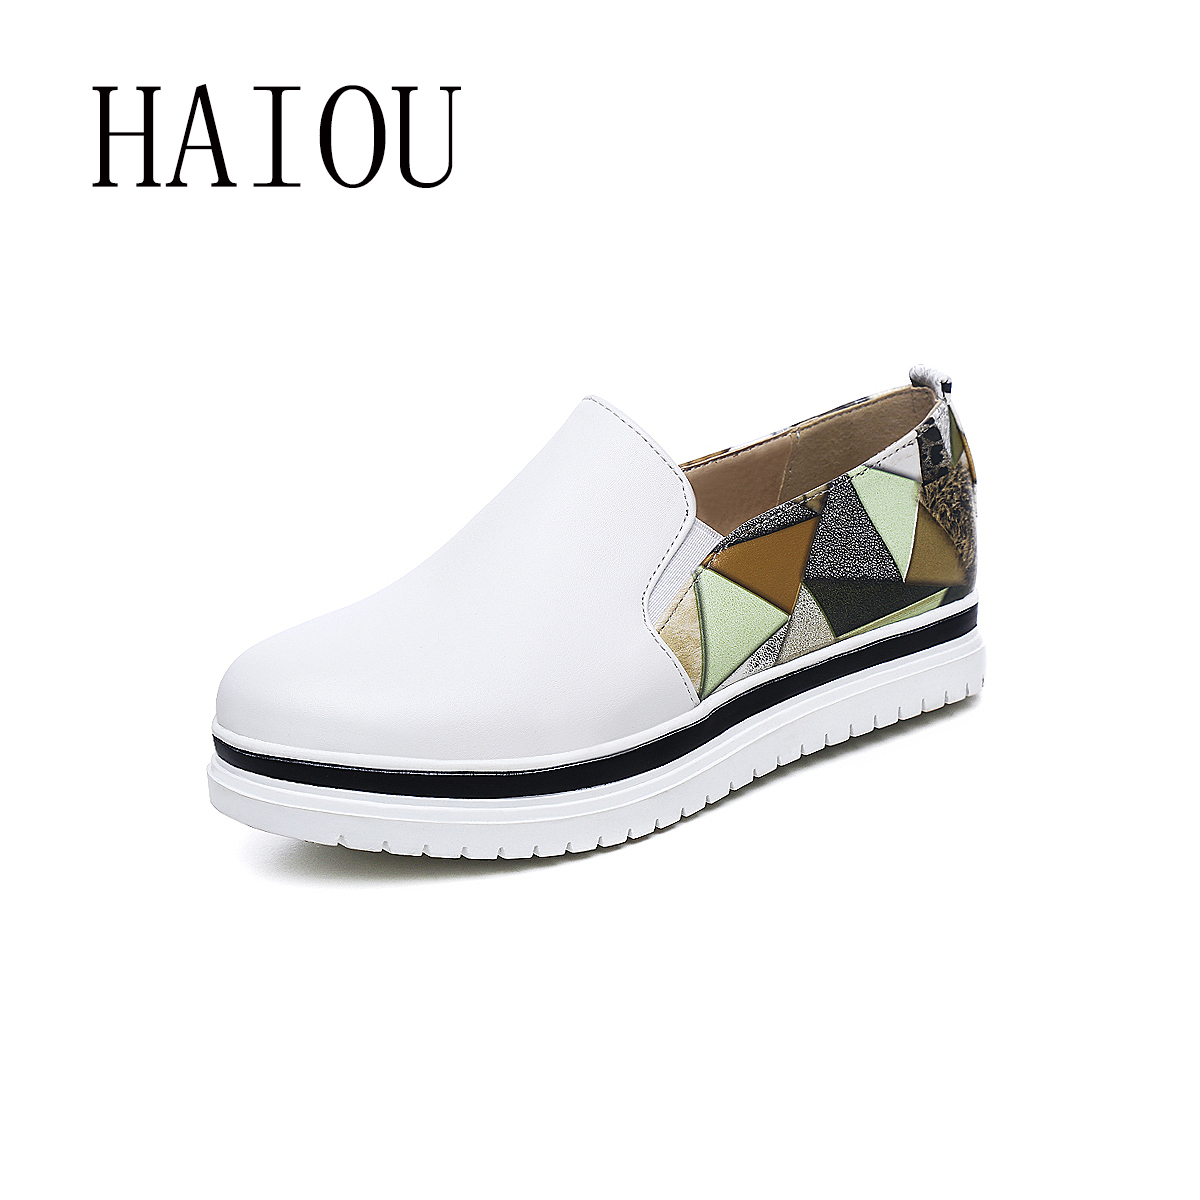 2017 Spring Autumn Casual Flats Shoes Women White Black Round Toe Ladies Slip on Moccasins Driving PU Loafers Platform Shoes New 2017 autumn fashion men pu shoes slip on black shoes casual loafers mens moccasins soft shoes male walking flats pu footwear